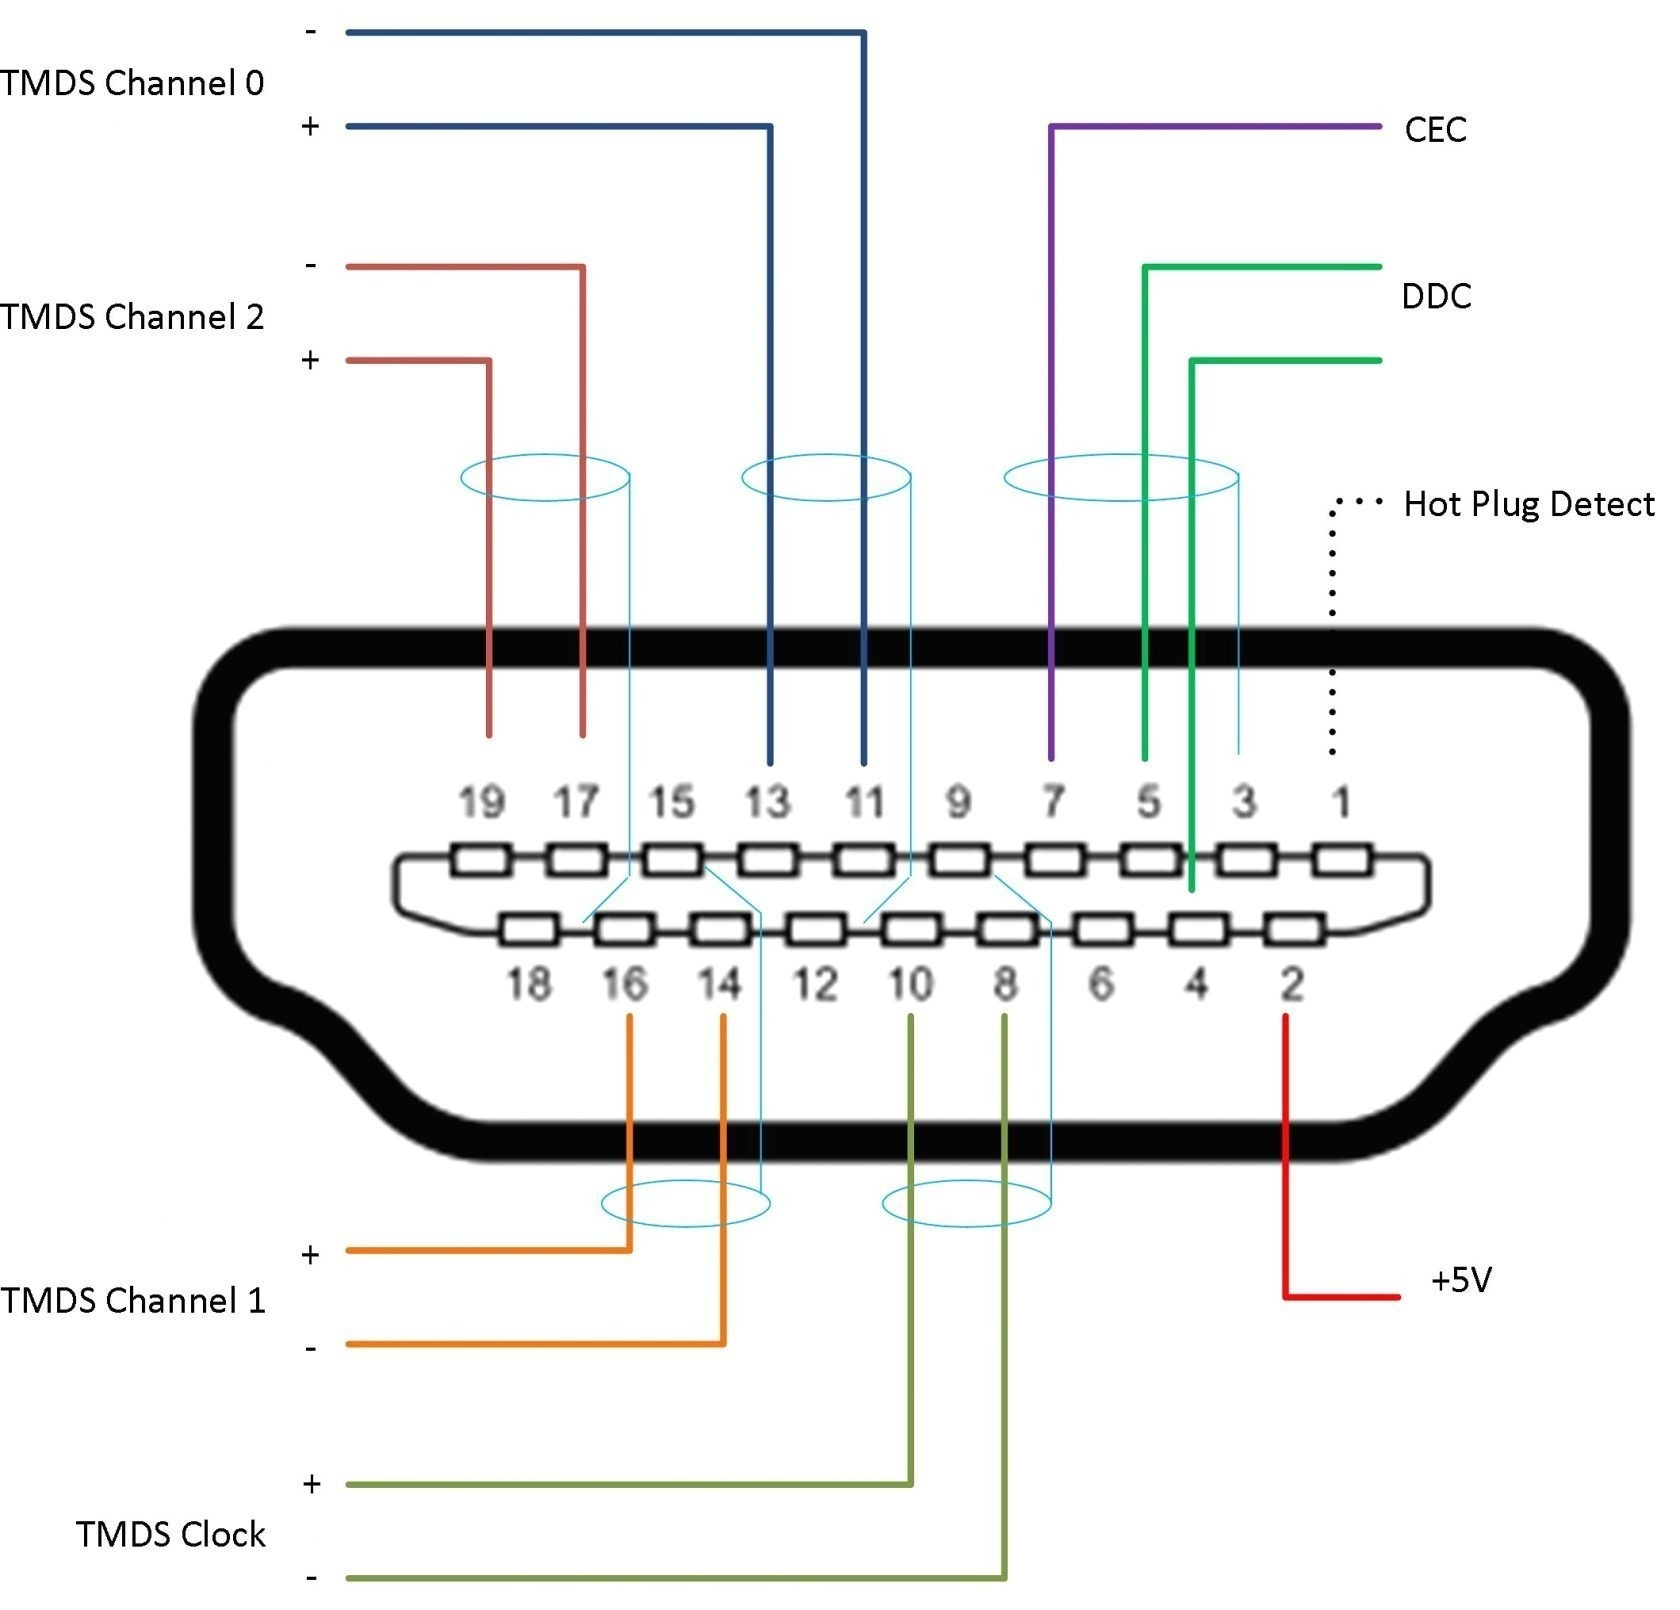 Usb To Vga Wire Diagram | Wiring Diagram Centre Usb Coaxial Wiring Schematic on usb keyboard schematic, usb schematic symbol, usb circuit schematic, usb to serial cable pinout, usb controller schematic, usb pin out schematic, mini usb schematic, wireless mouse schematic, usb 2.0 schematic, ps2 to usb schematic, usb charger schematic, usb switch schematic, usb cable schematic, usb wire, usb splitter schematic, micro usb schematic, usb to ethernet cable pinout, usb diagram, usb power schematic, usb port schematic,